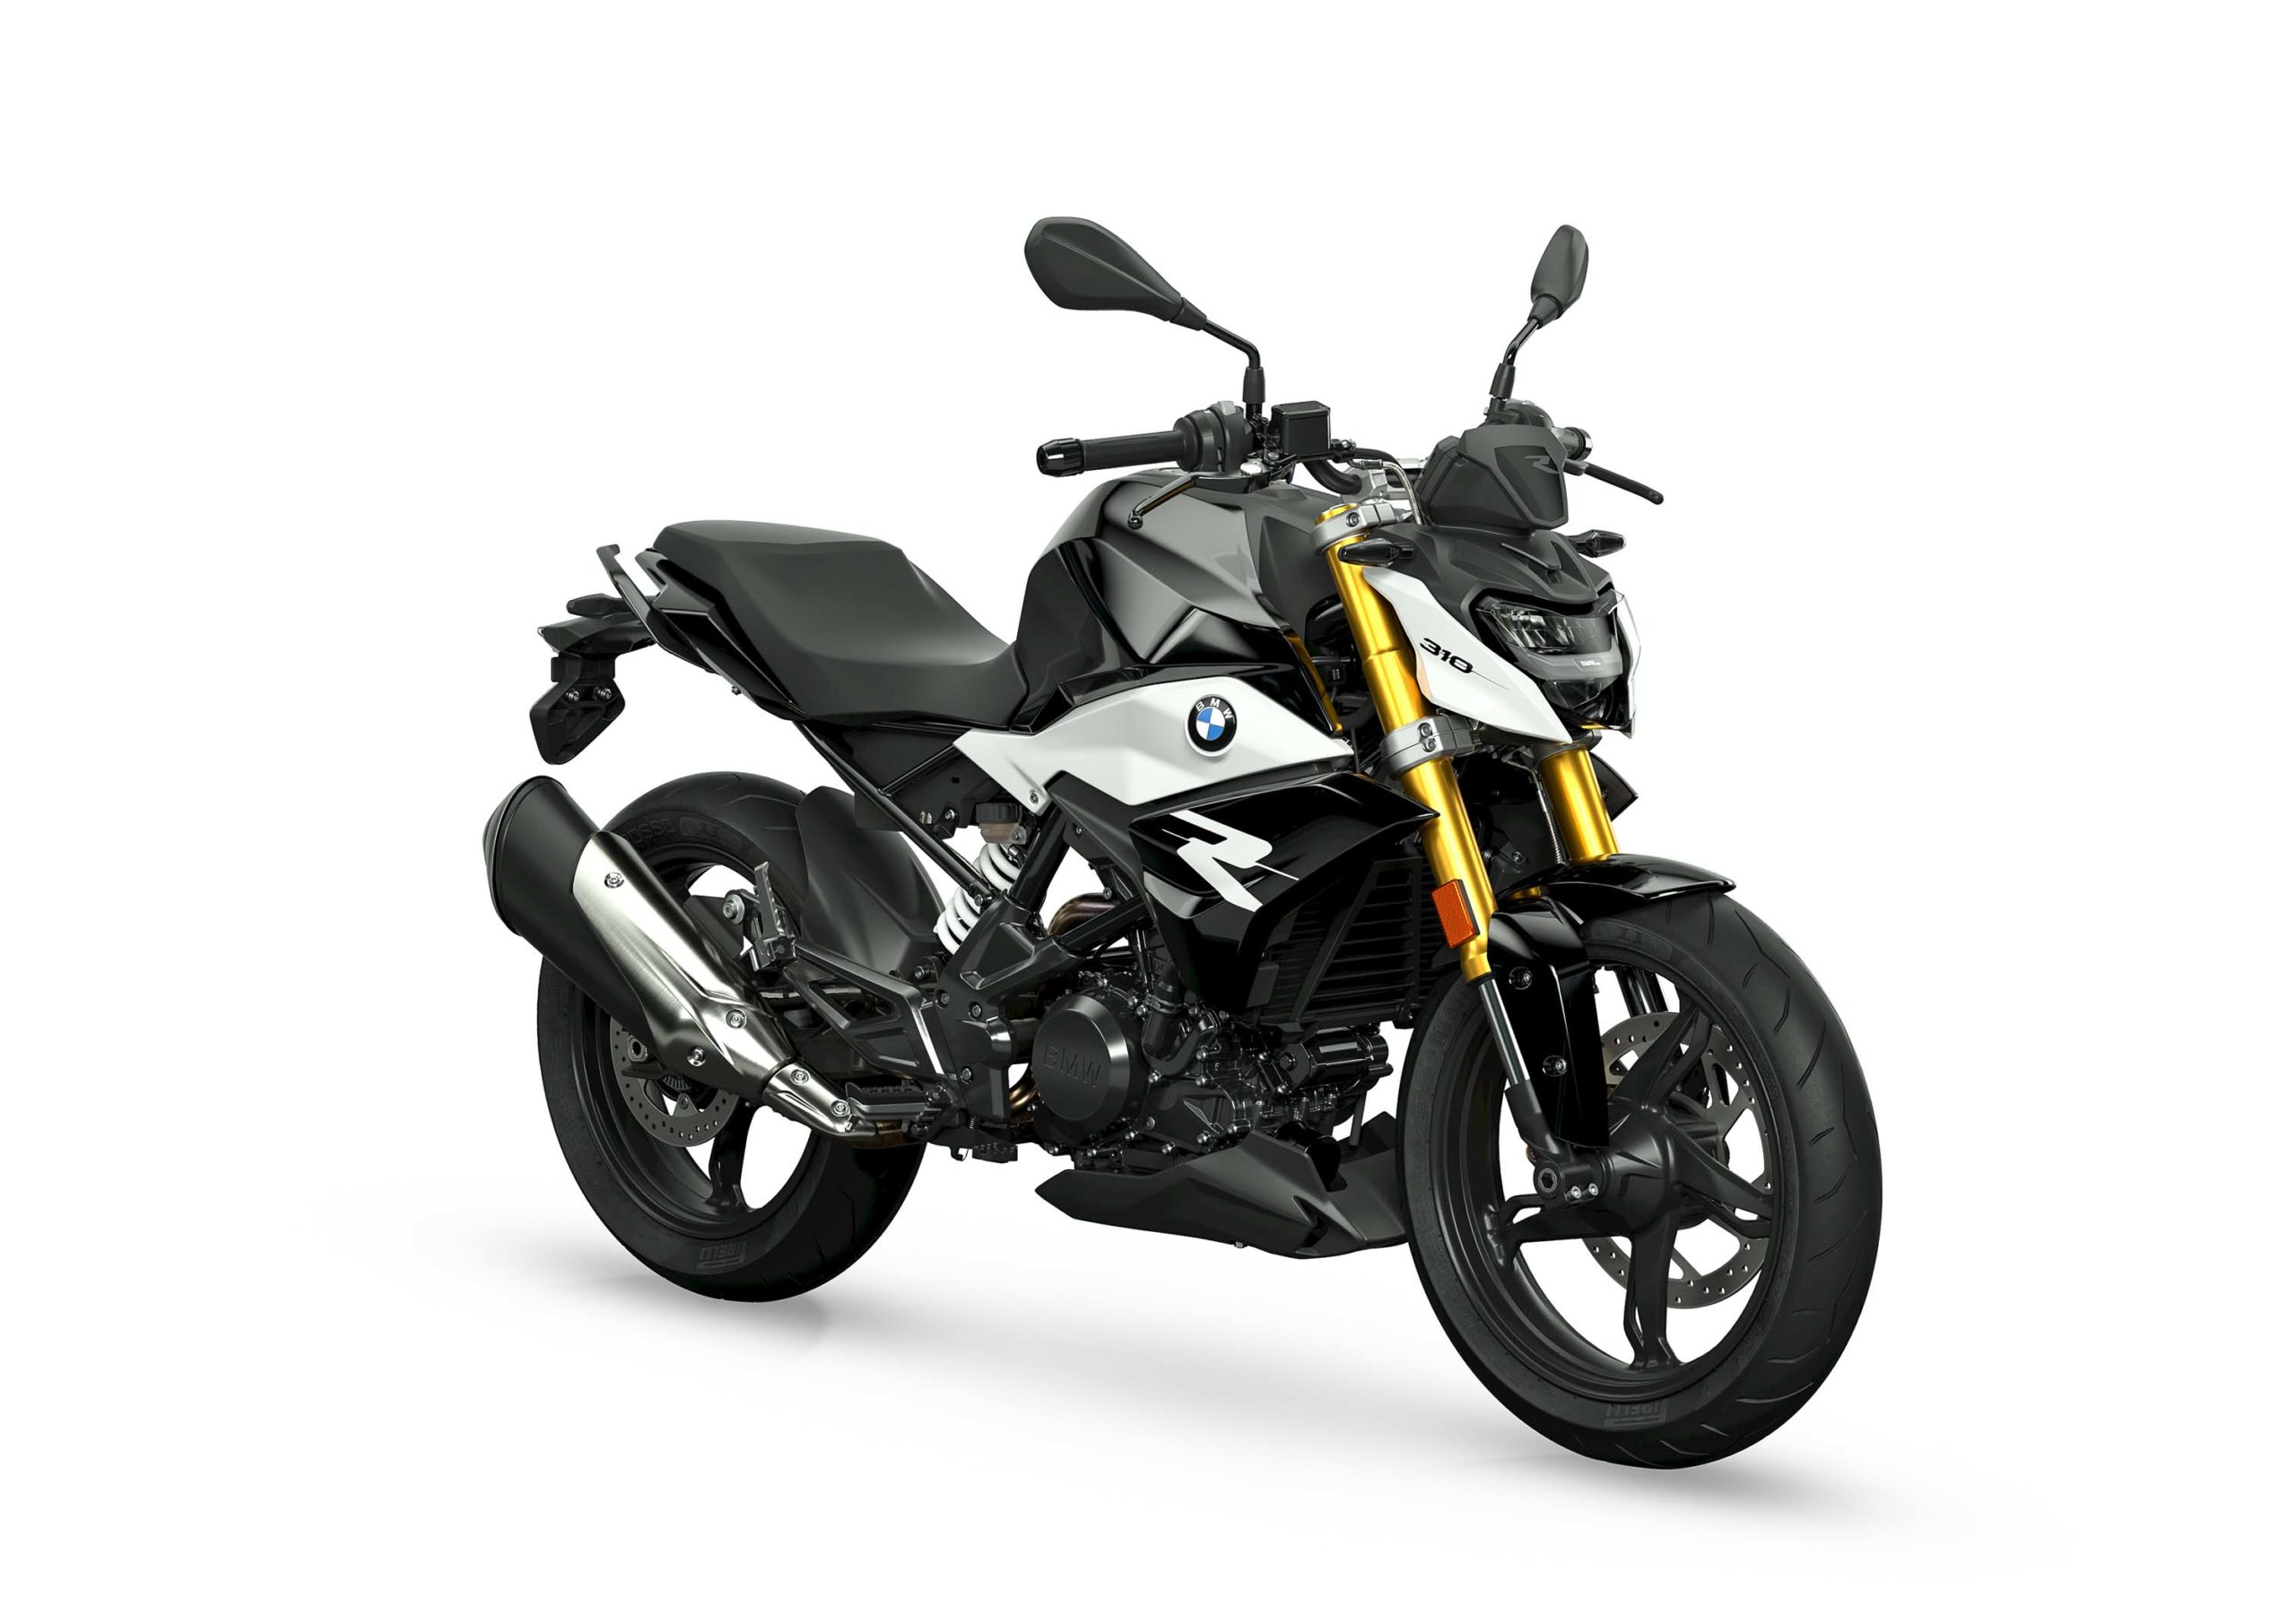 BMW G310 R: Naked bike with a new look - Canada Moto Guide